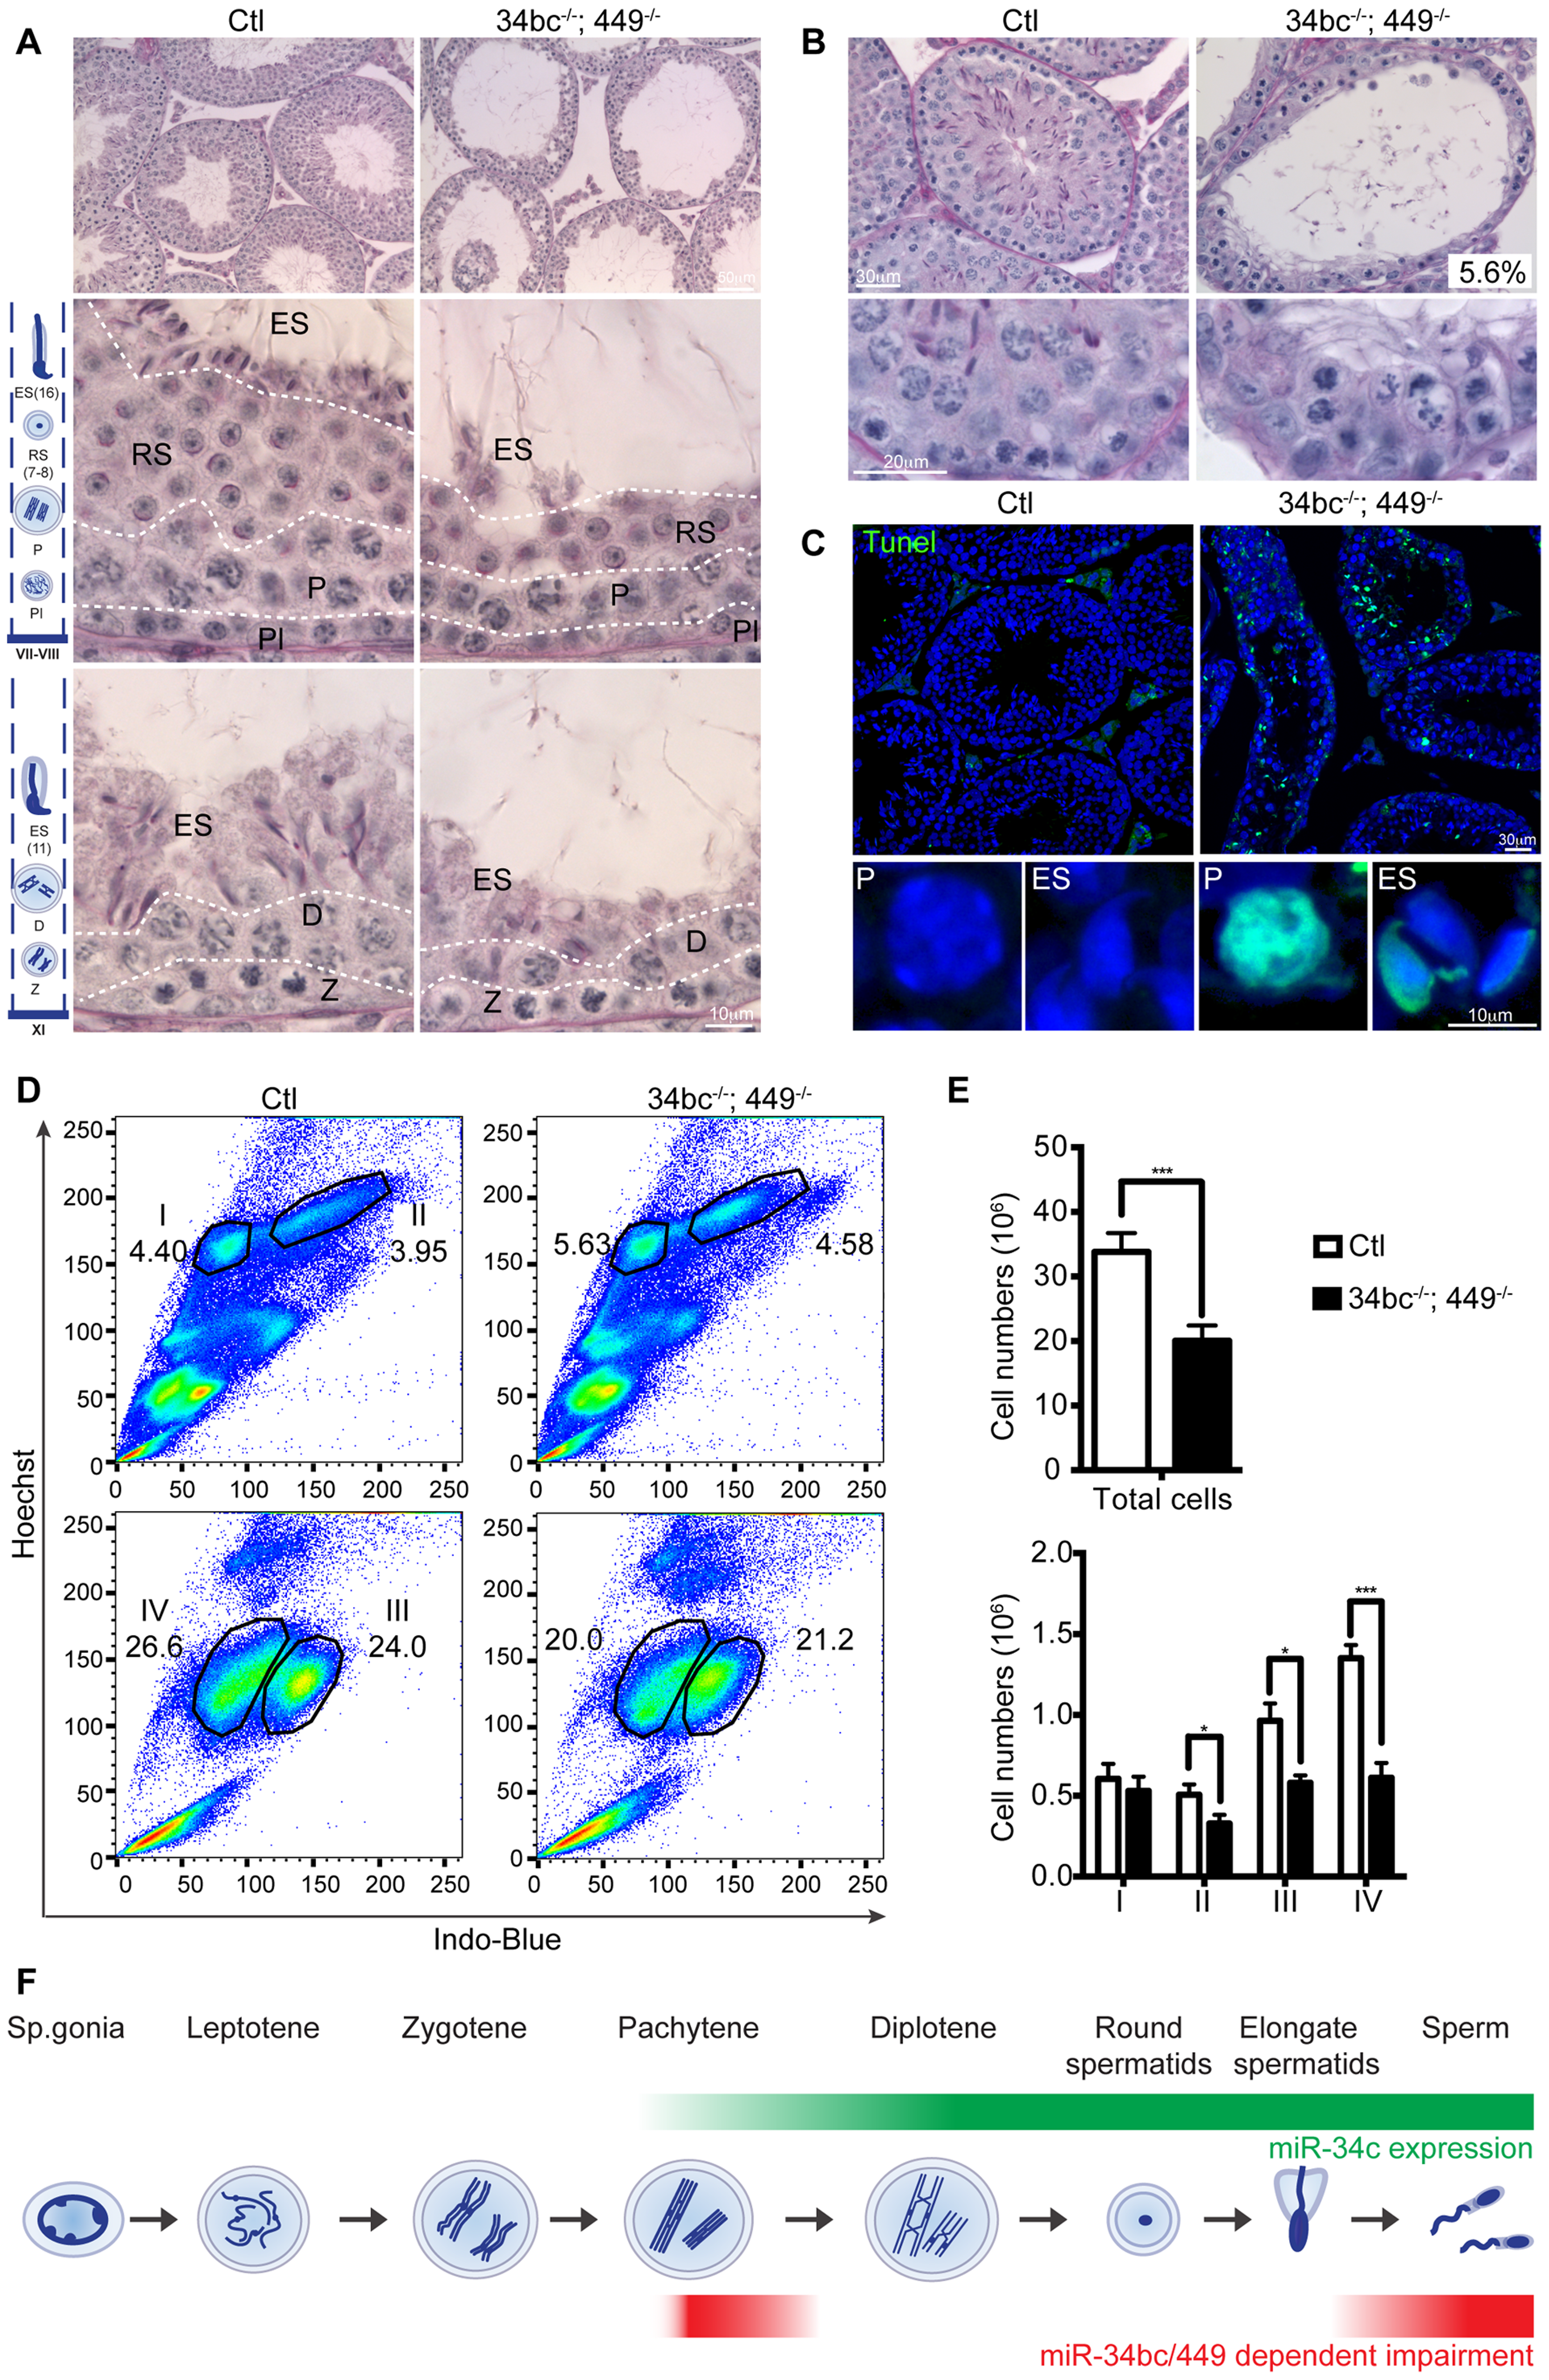 miR-34bc/449 are required for multiple stages of post-mitotic spermatogenesis.